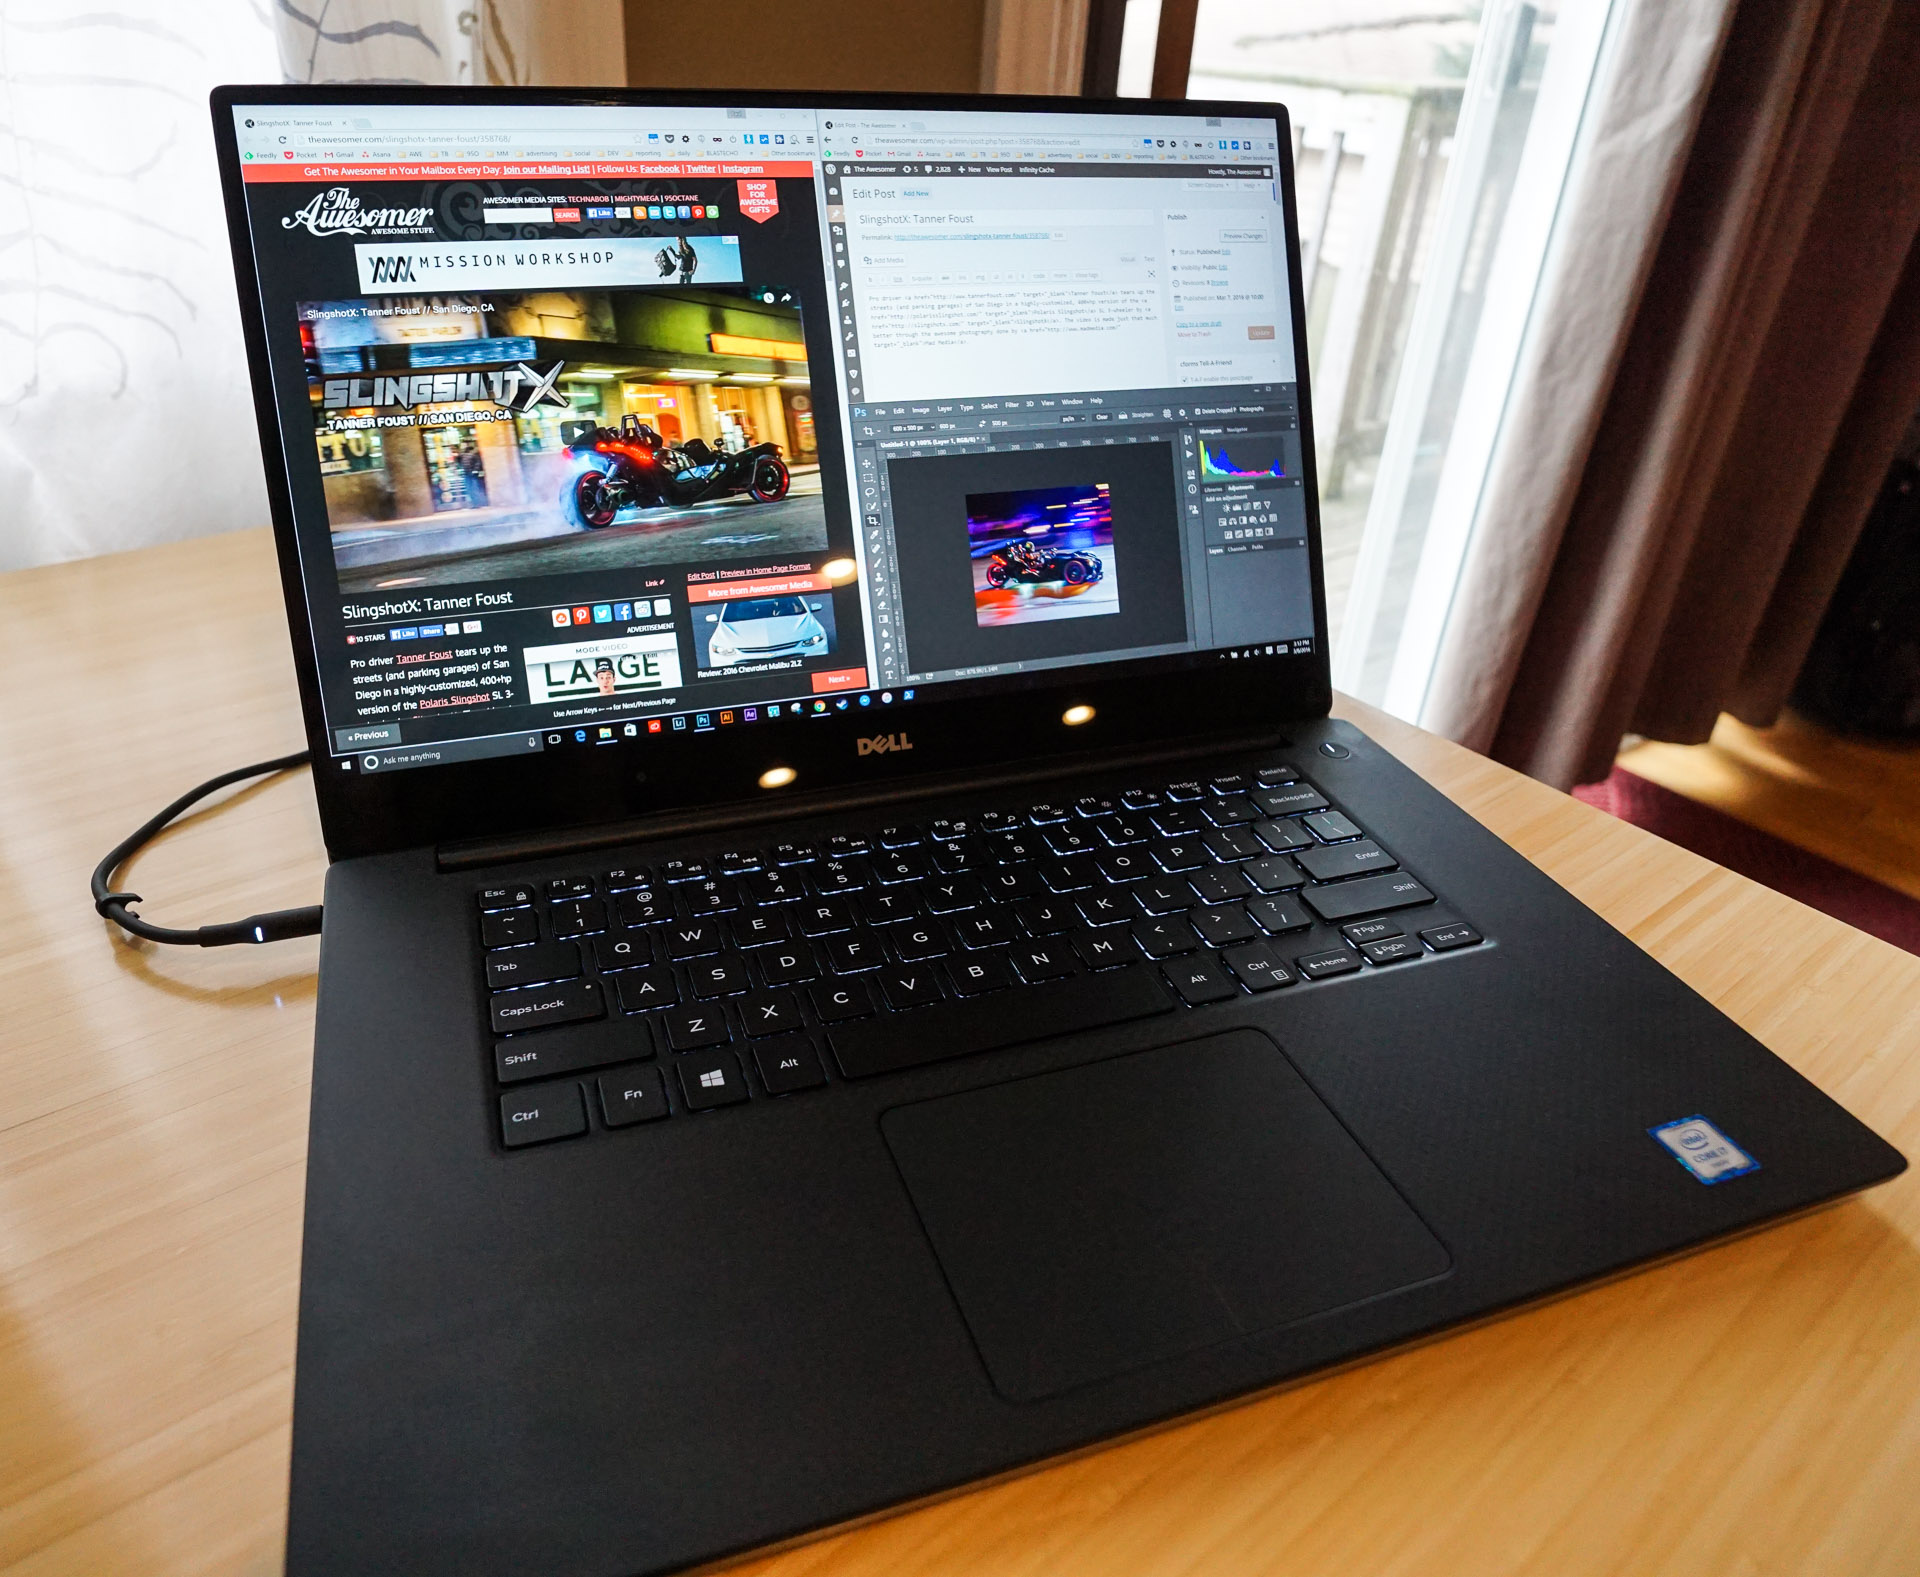 Dell XPS 15: Making Awesome(r) Things